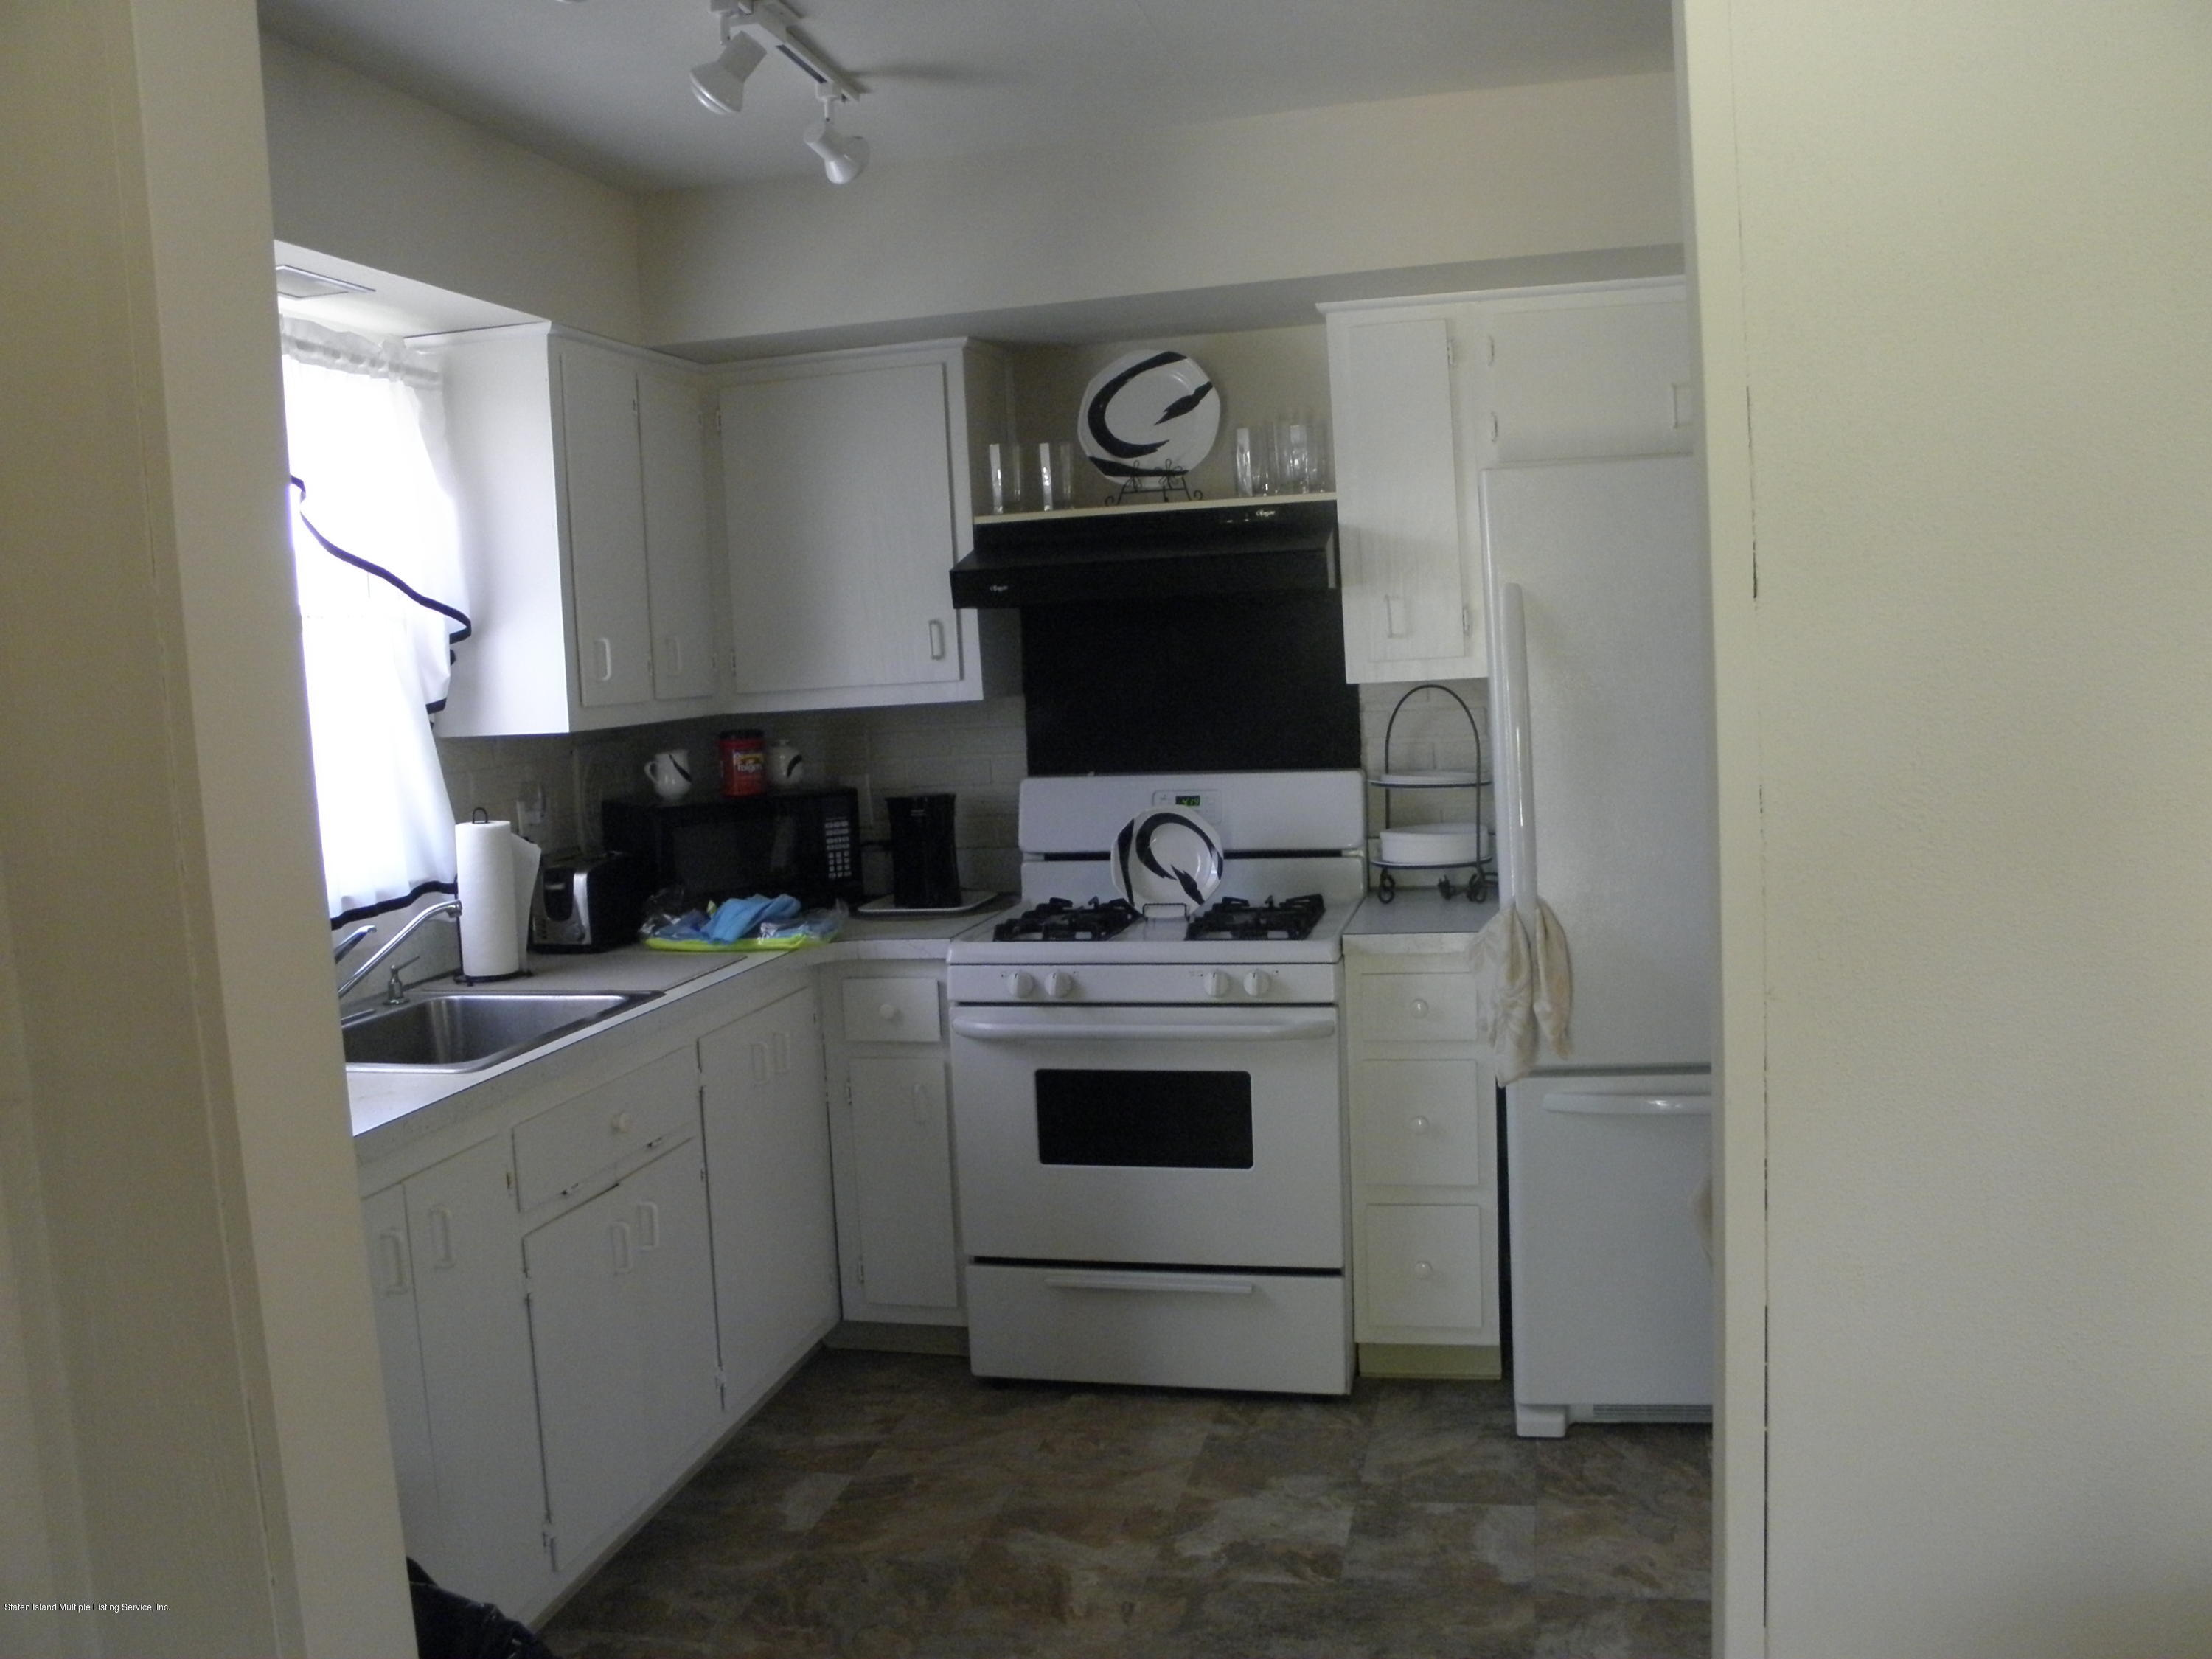 Single Family - Detached 3 Clearmont Avenue  Staten Island, NY 10309, MLS-1128659-4